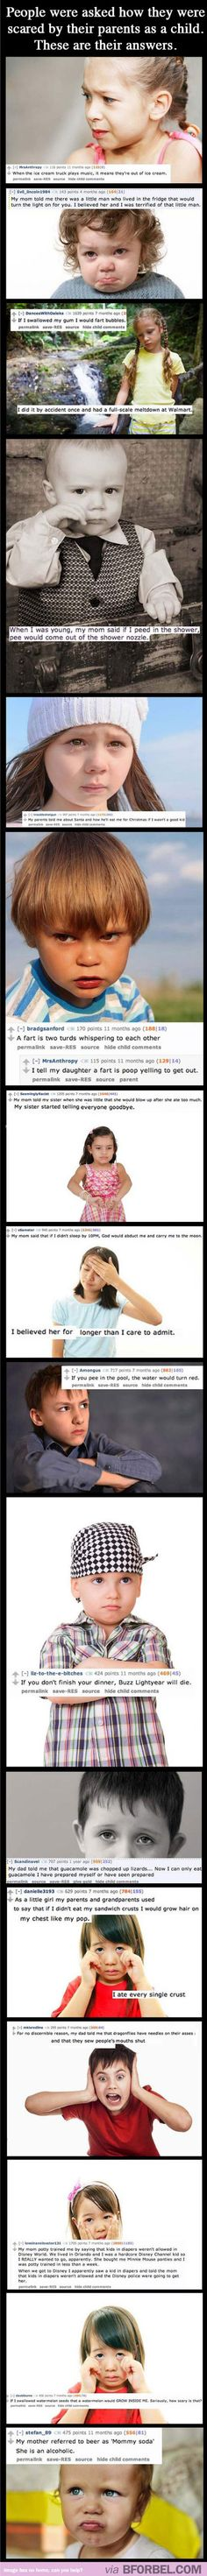 Lies our parents told us. Scary how we've all heard the same things. Is there a parent group for this?